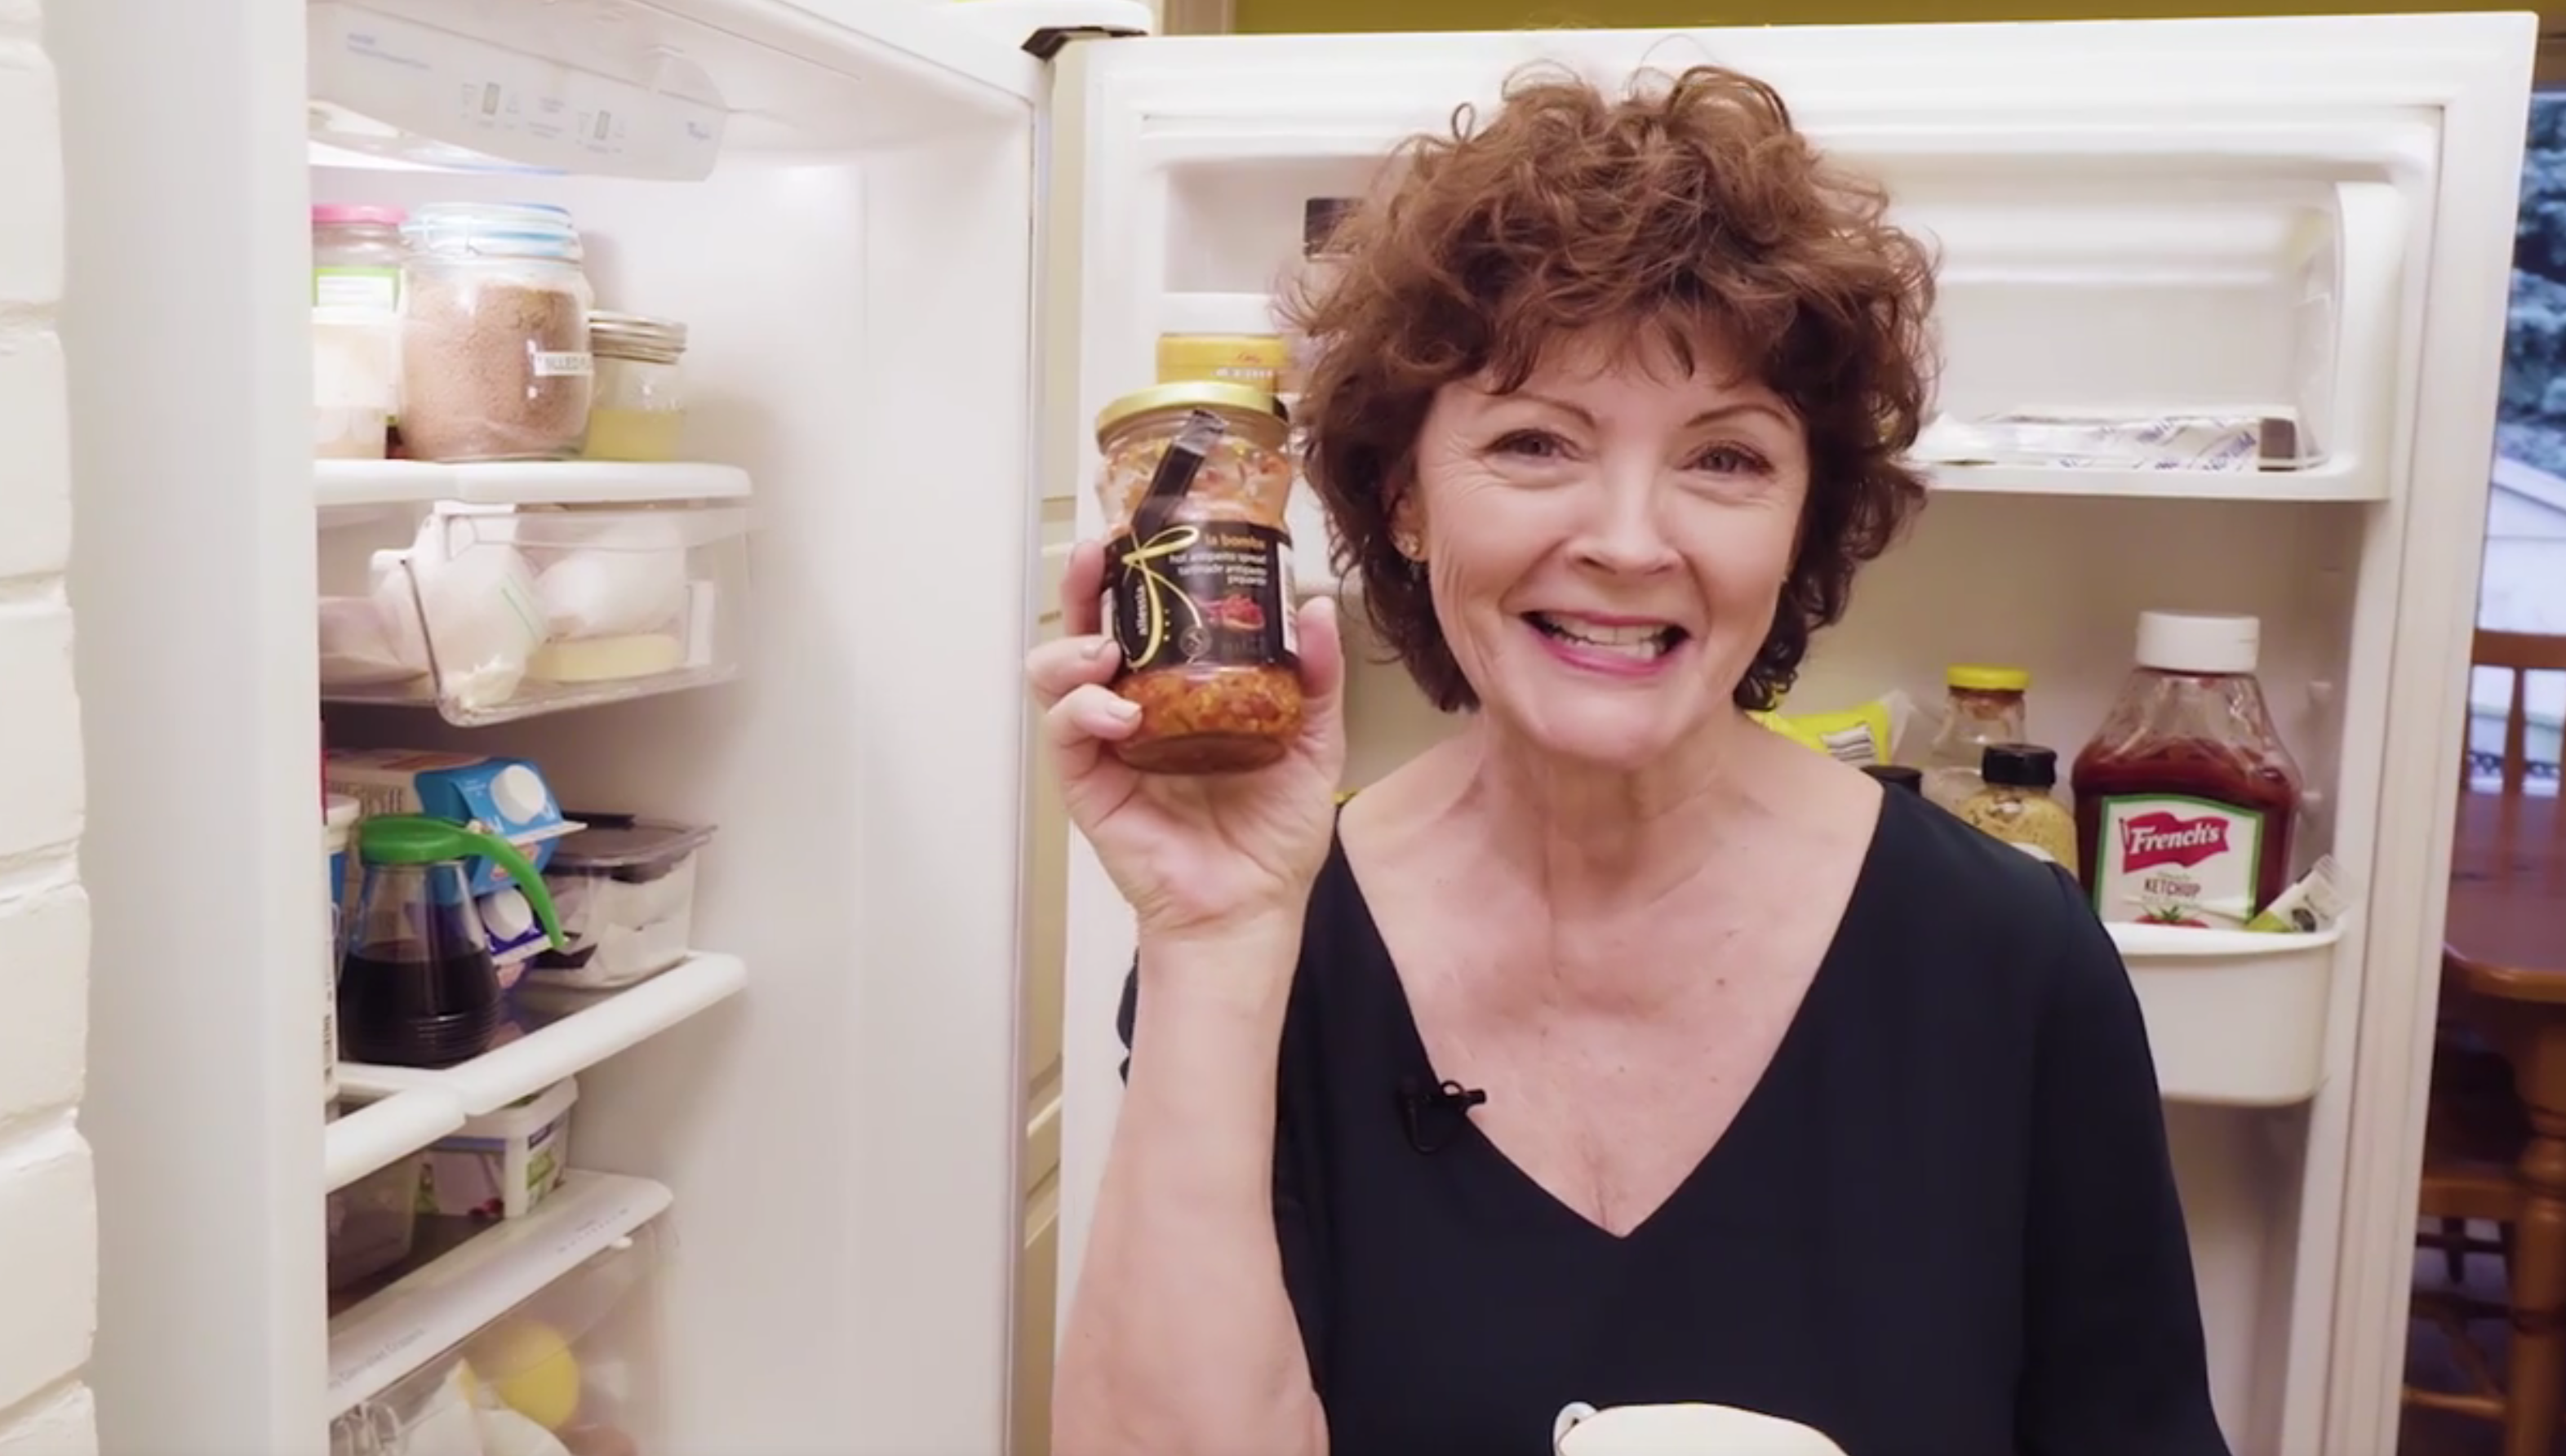 Mairlyn Smith holding a jar of sauce